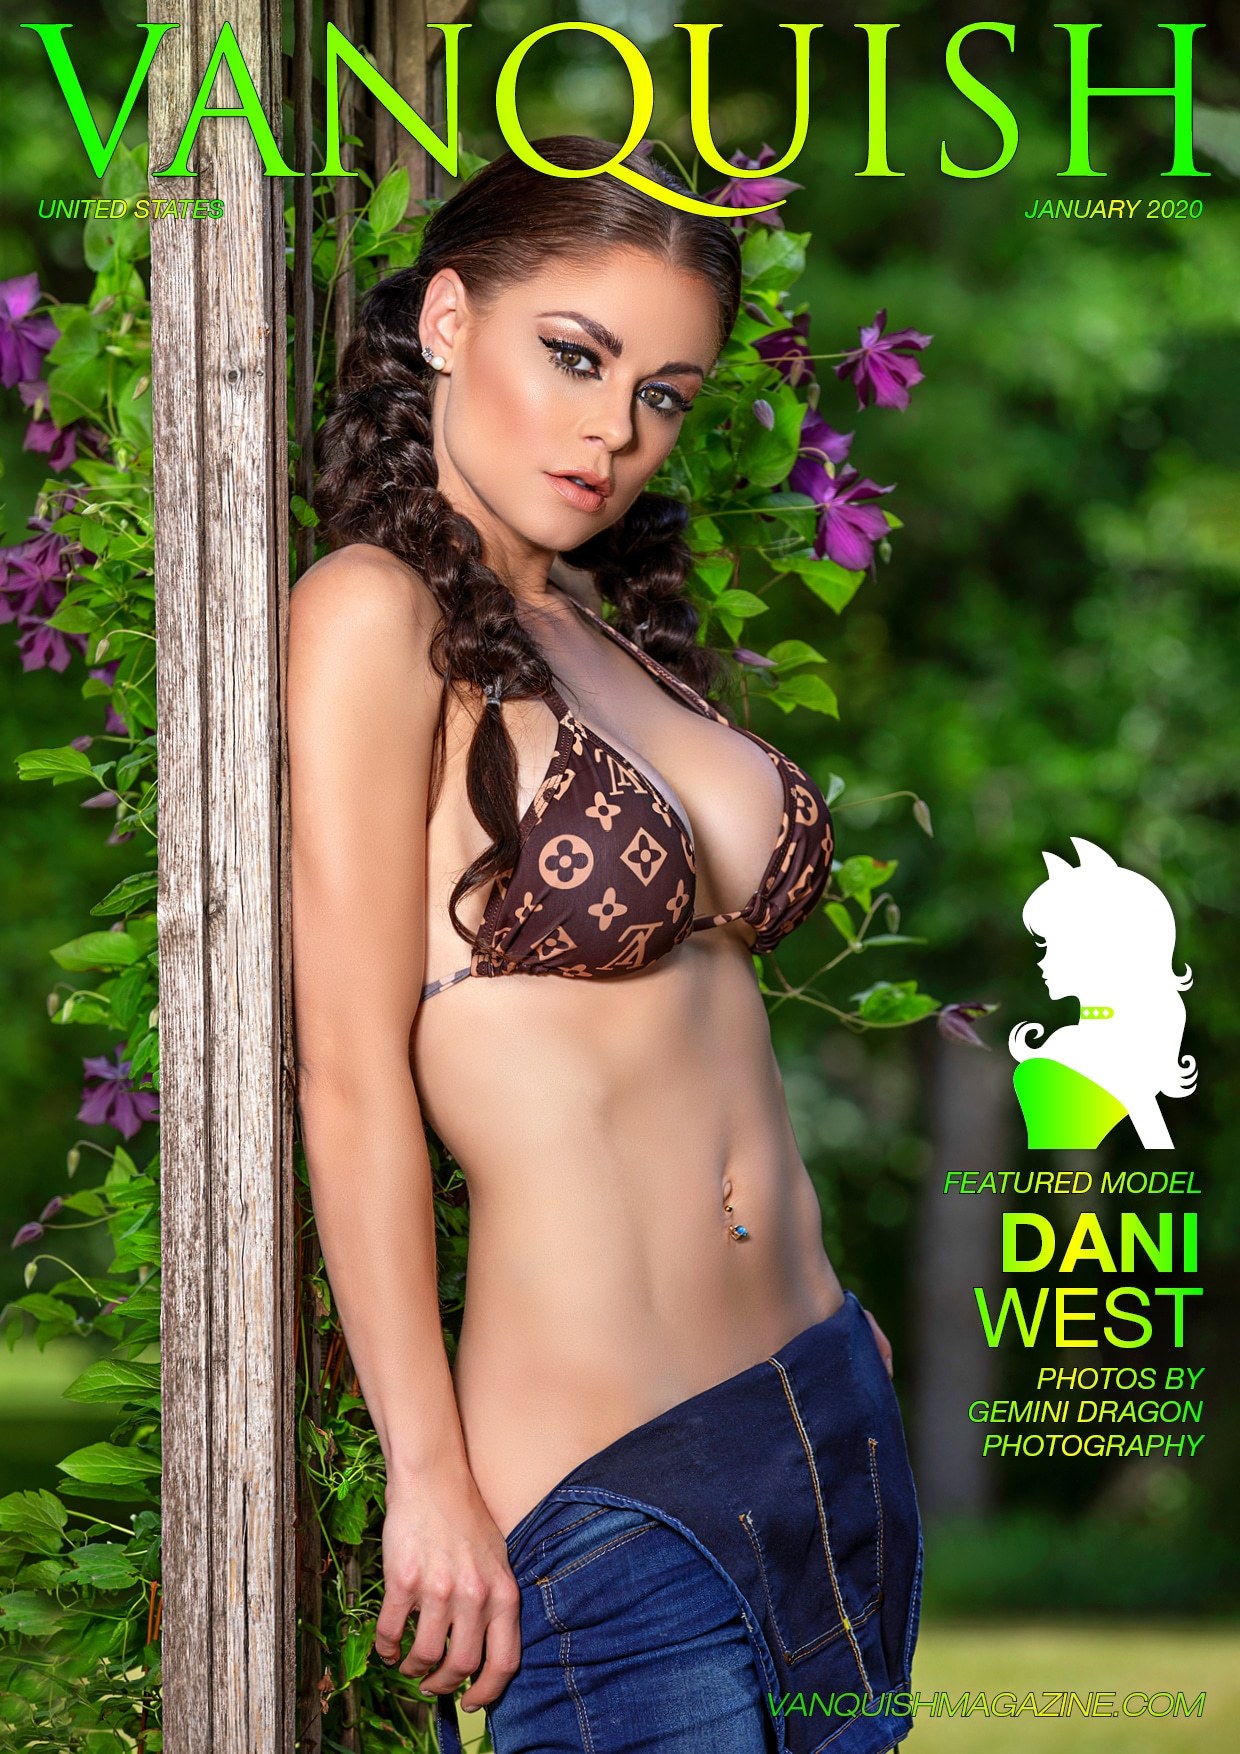 Vanquish Magazine – January 2020 – Dani West